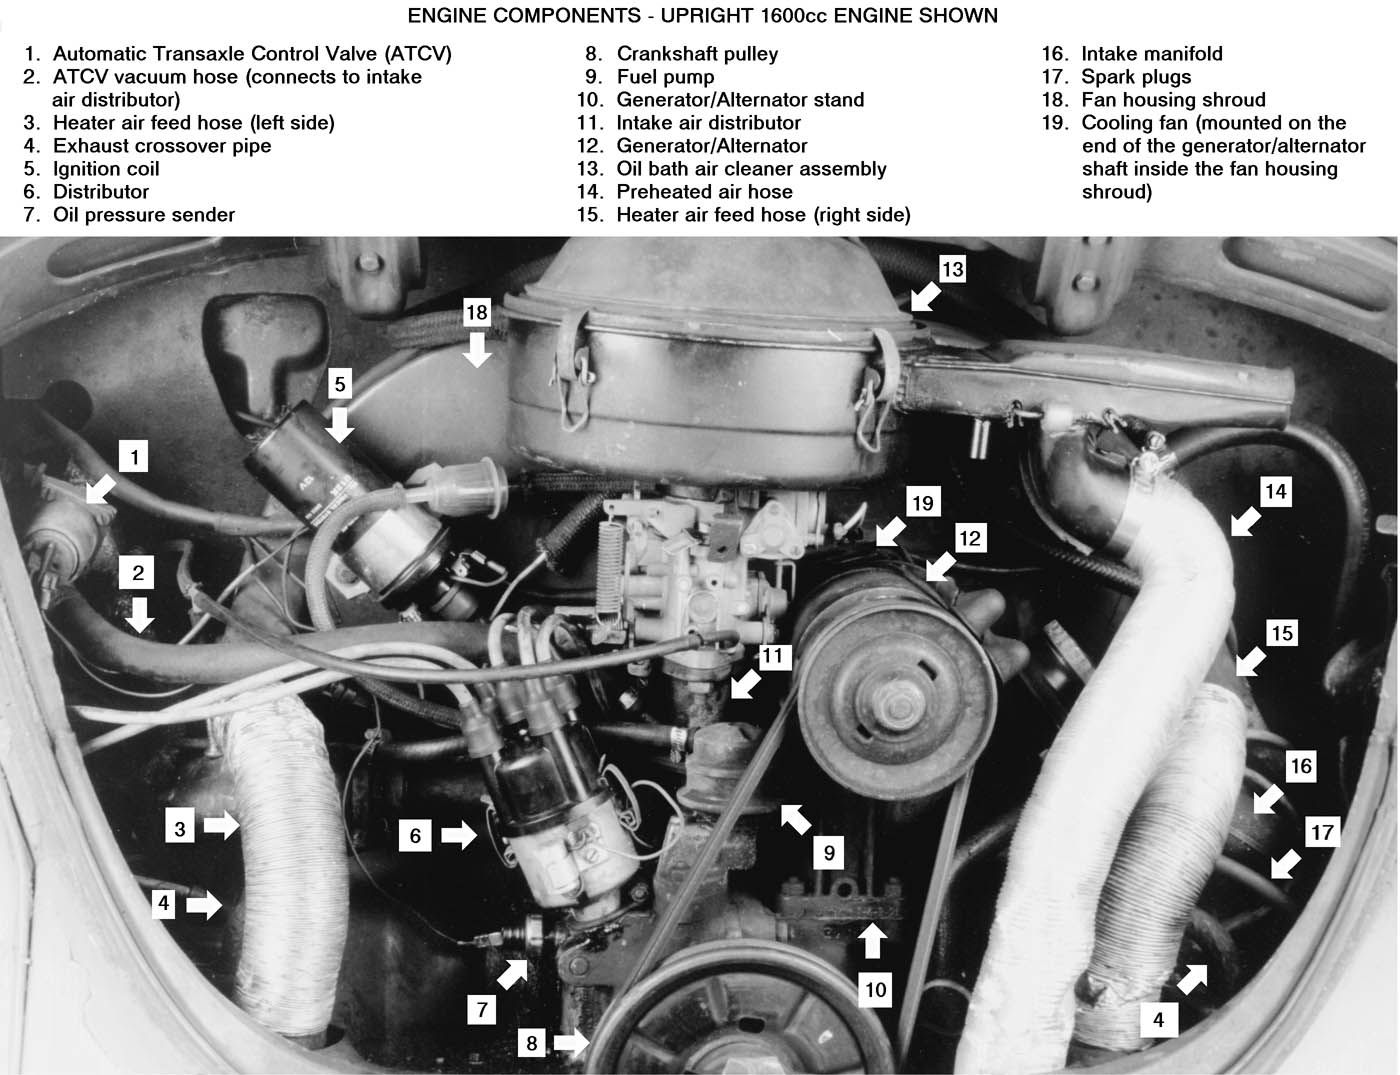 medium resolution of 1972 vw beetle engine diagram starter vw download free image about wiring diagram